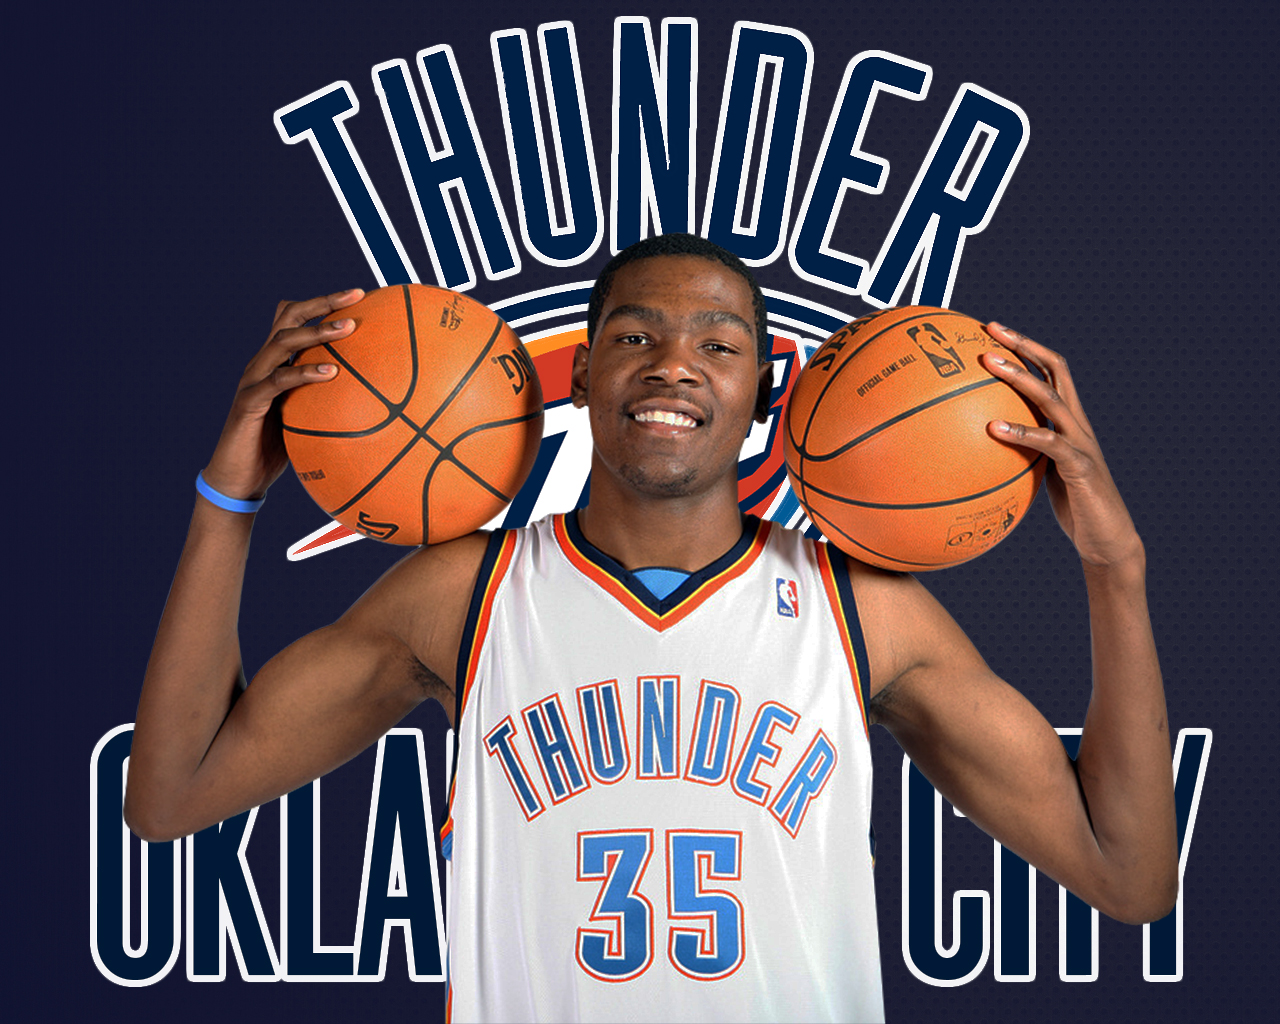 Best HD Wallpaper Kevin Durant OKC Jersey 2013 For Desktop